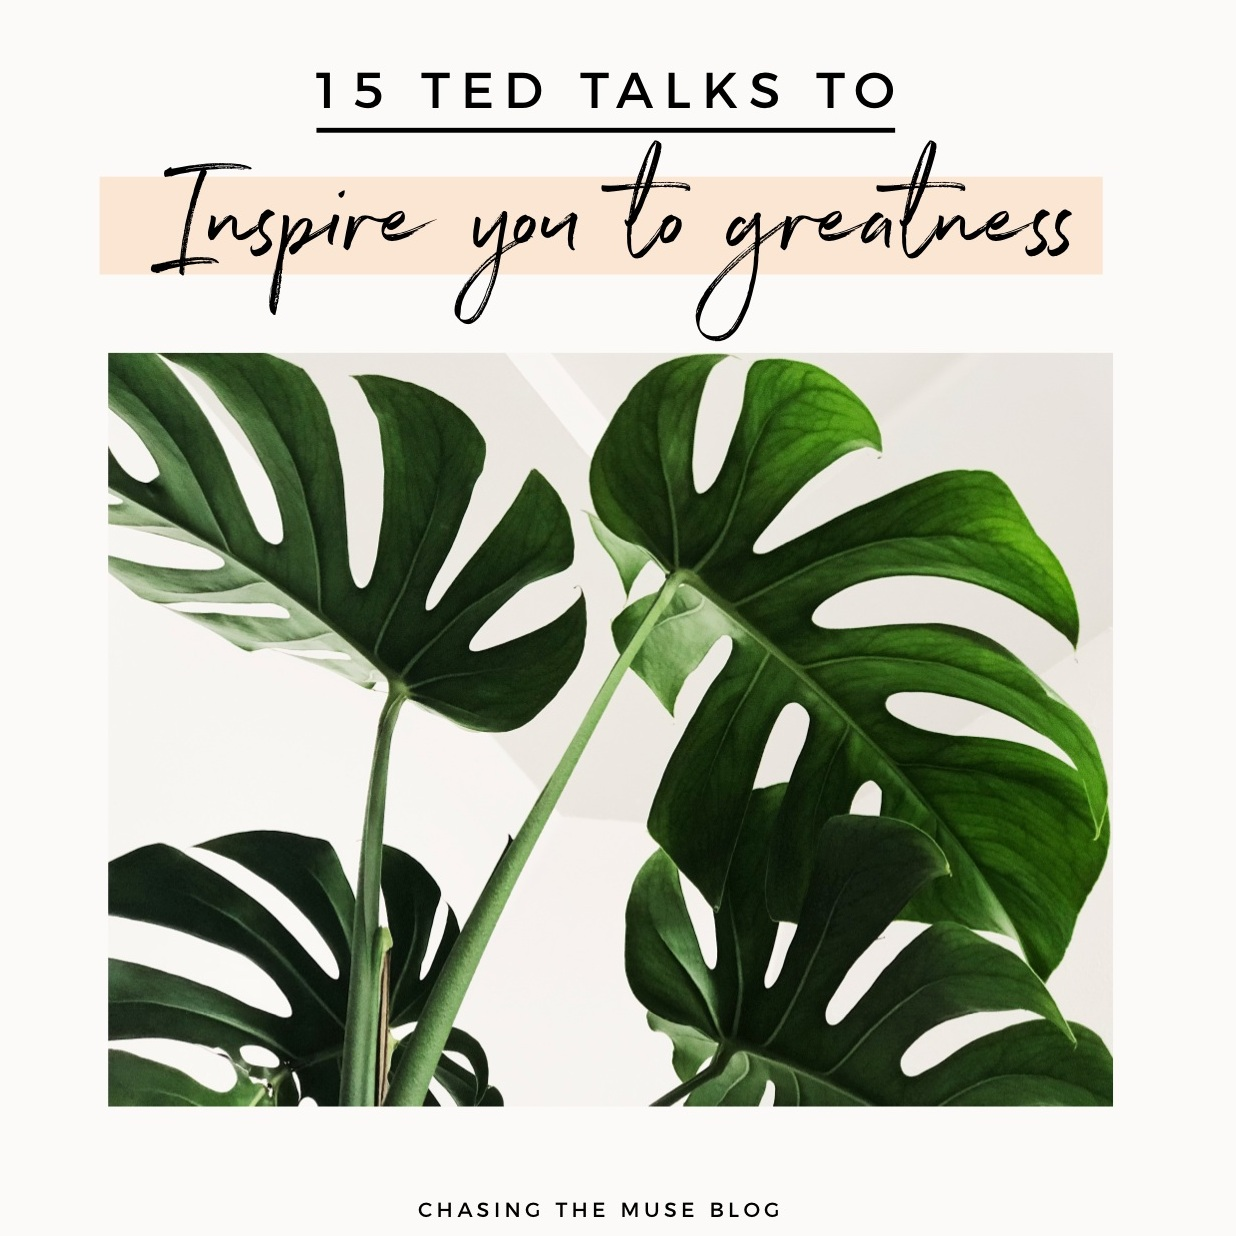 15 Ted Talks To Inspire You To Greatness-Chasing The Muse Blog